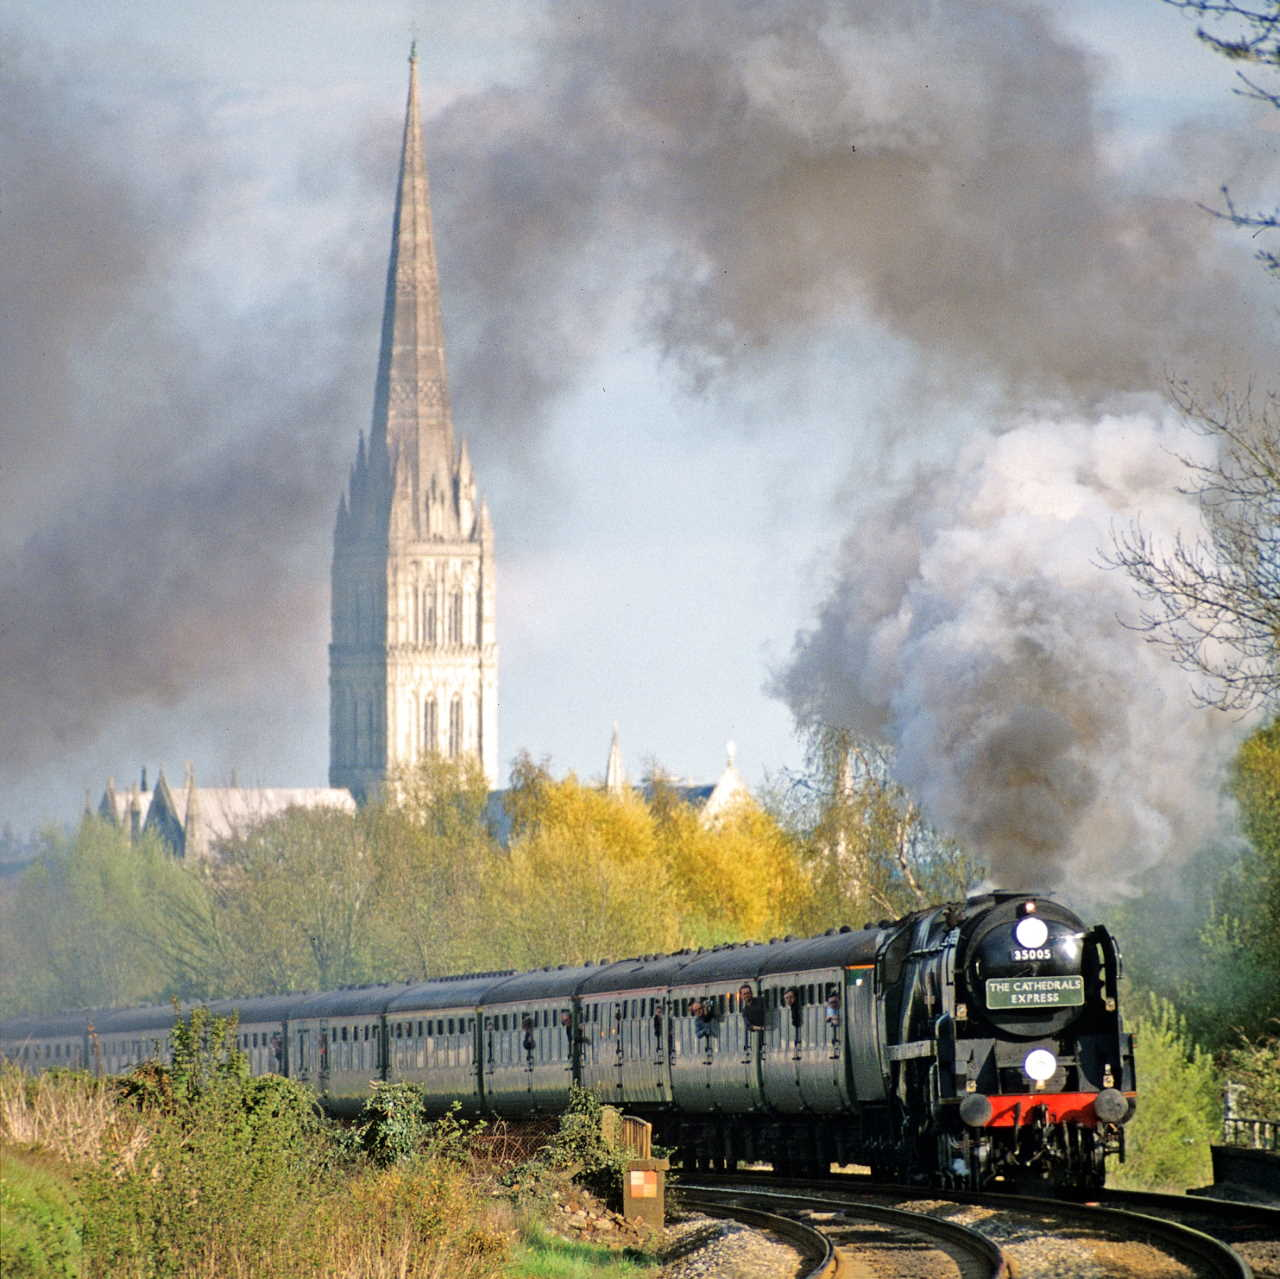 """35005 """"Canadian Pacific"""" leaves Salisbury bound for Yeovil Jn with a Cathedrals Express crew-training run. April 2001"""